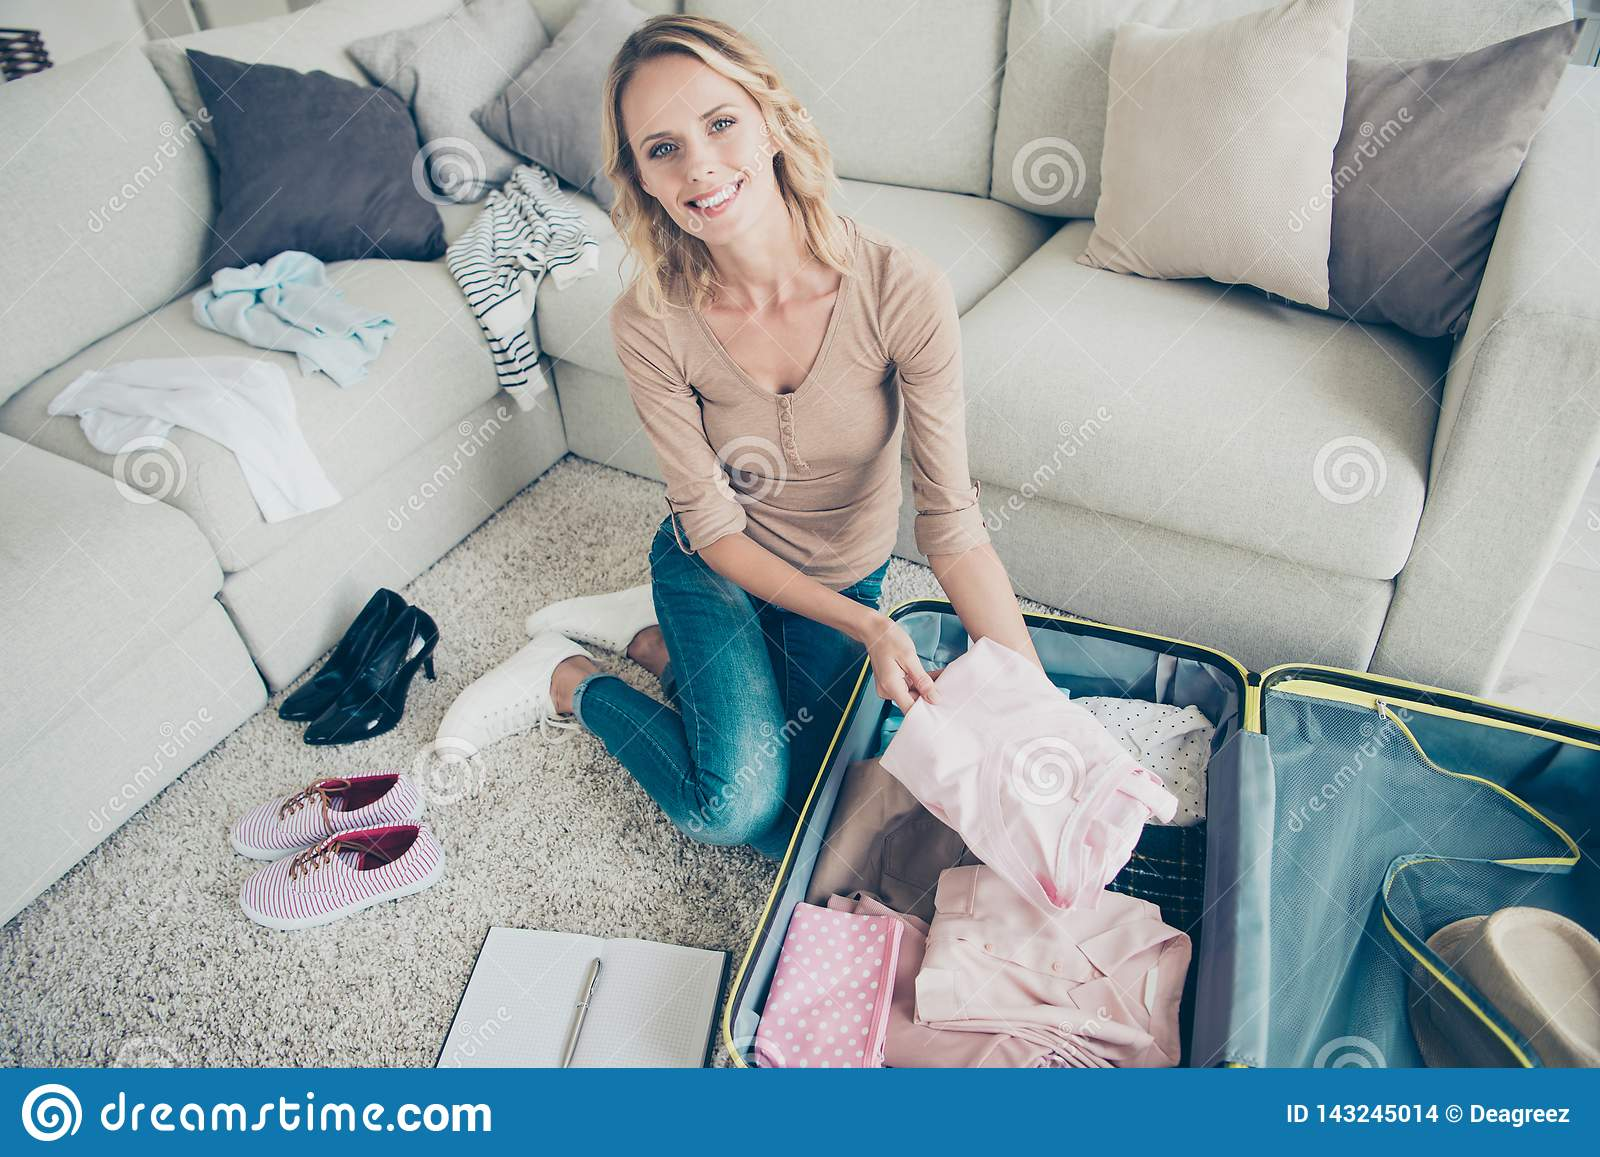 Picture of: Full Legs Body Size Cute Gorgeous Optimist Lady In Her Blue Jean Stock Photo Image Of Lifestyle Baggage 143245014